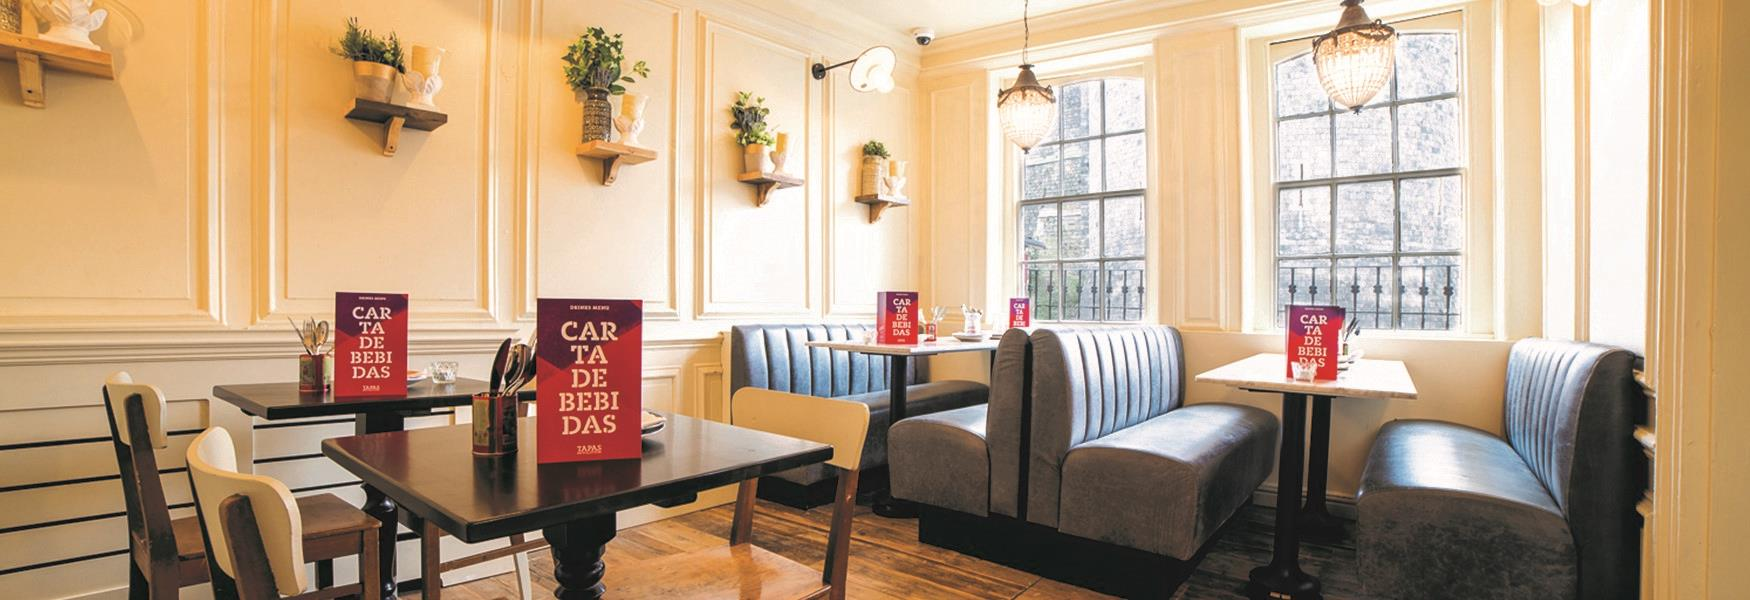 Omar Allibhoy's Tapas Revolution opposite Windsor Castle